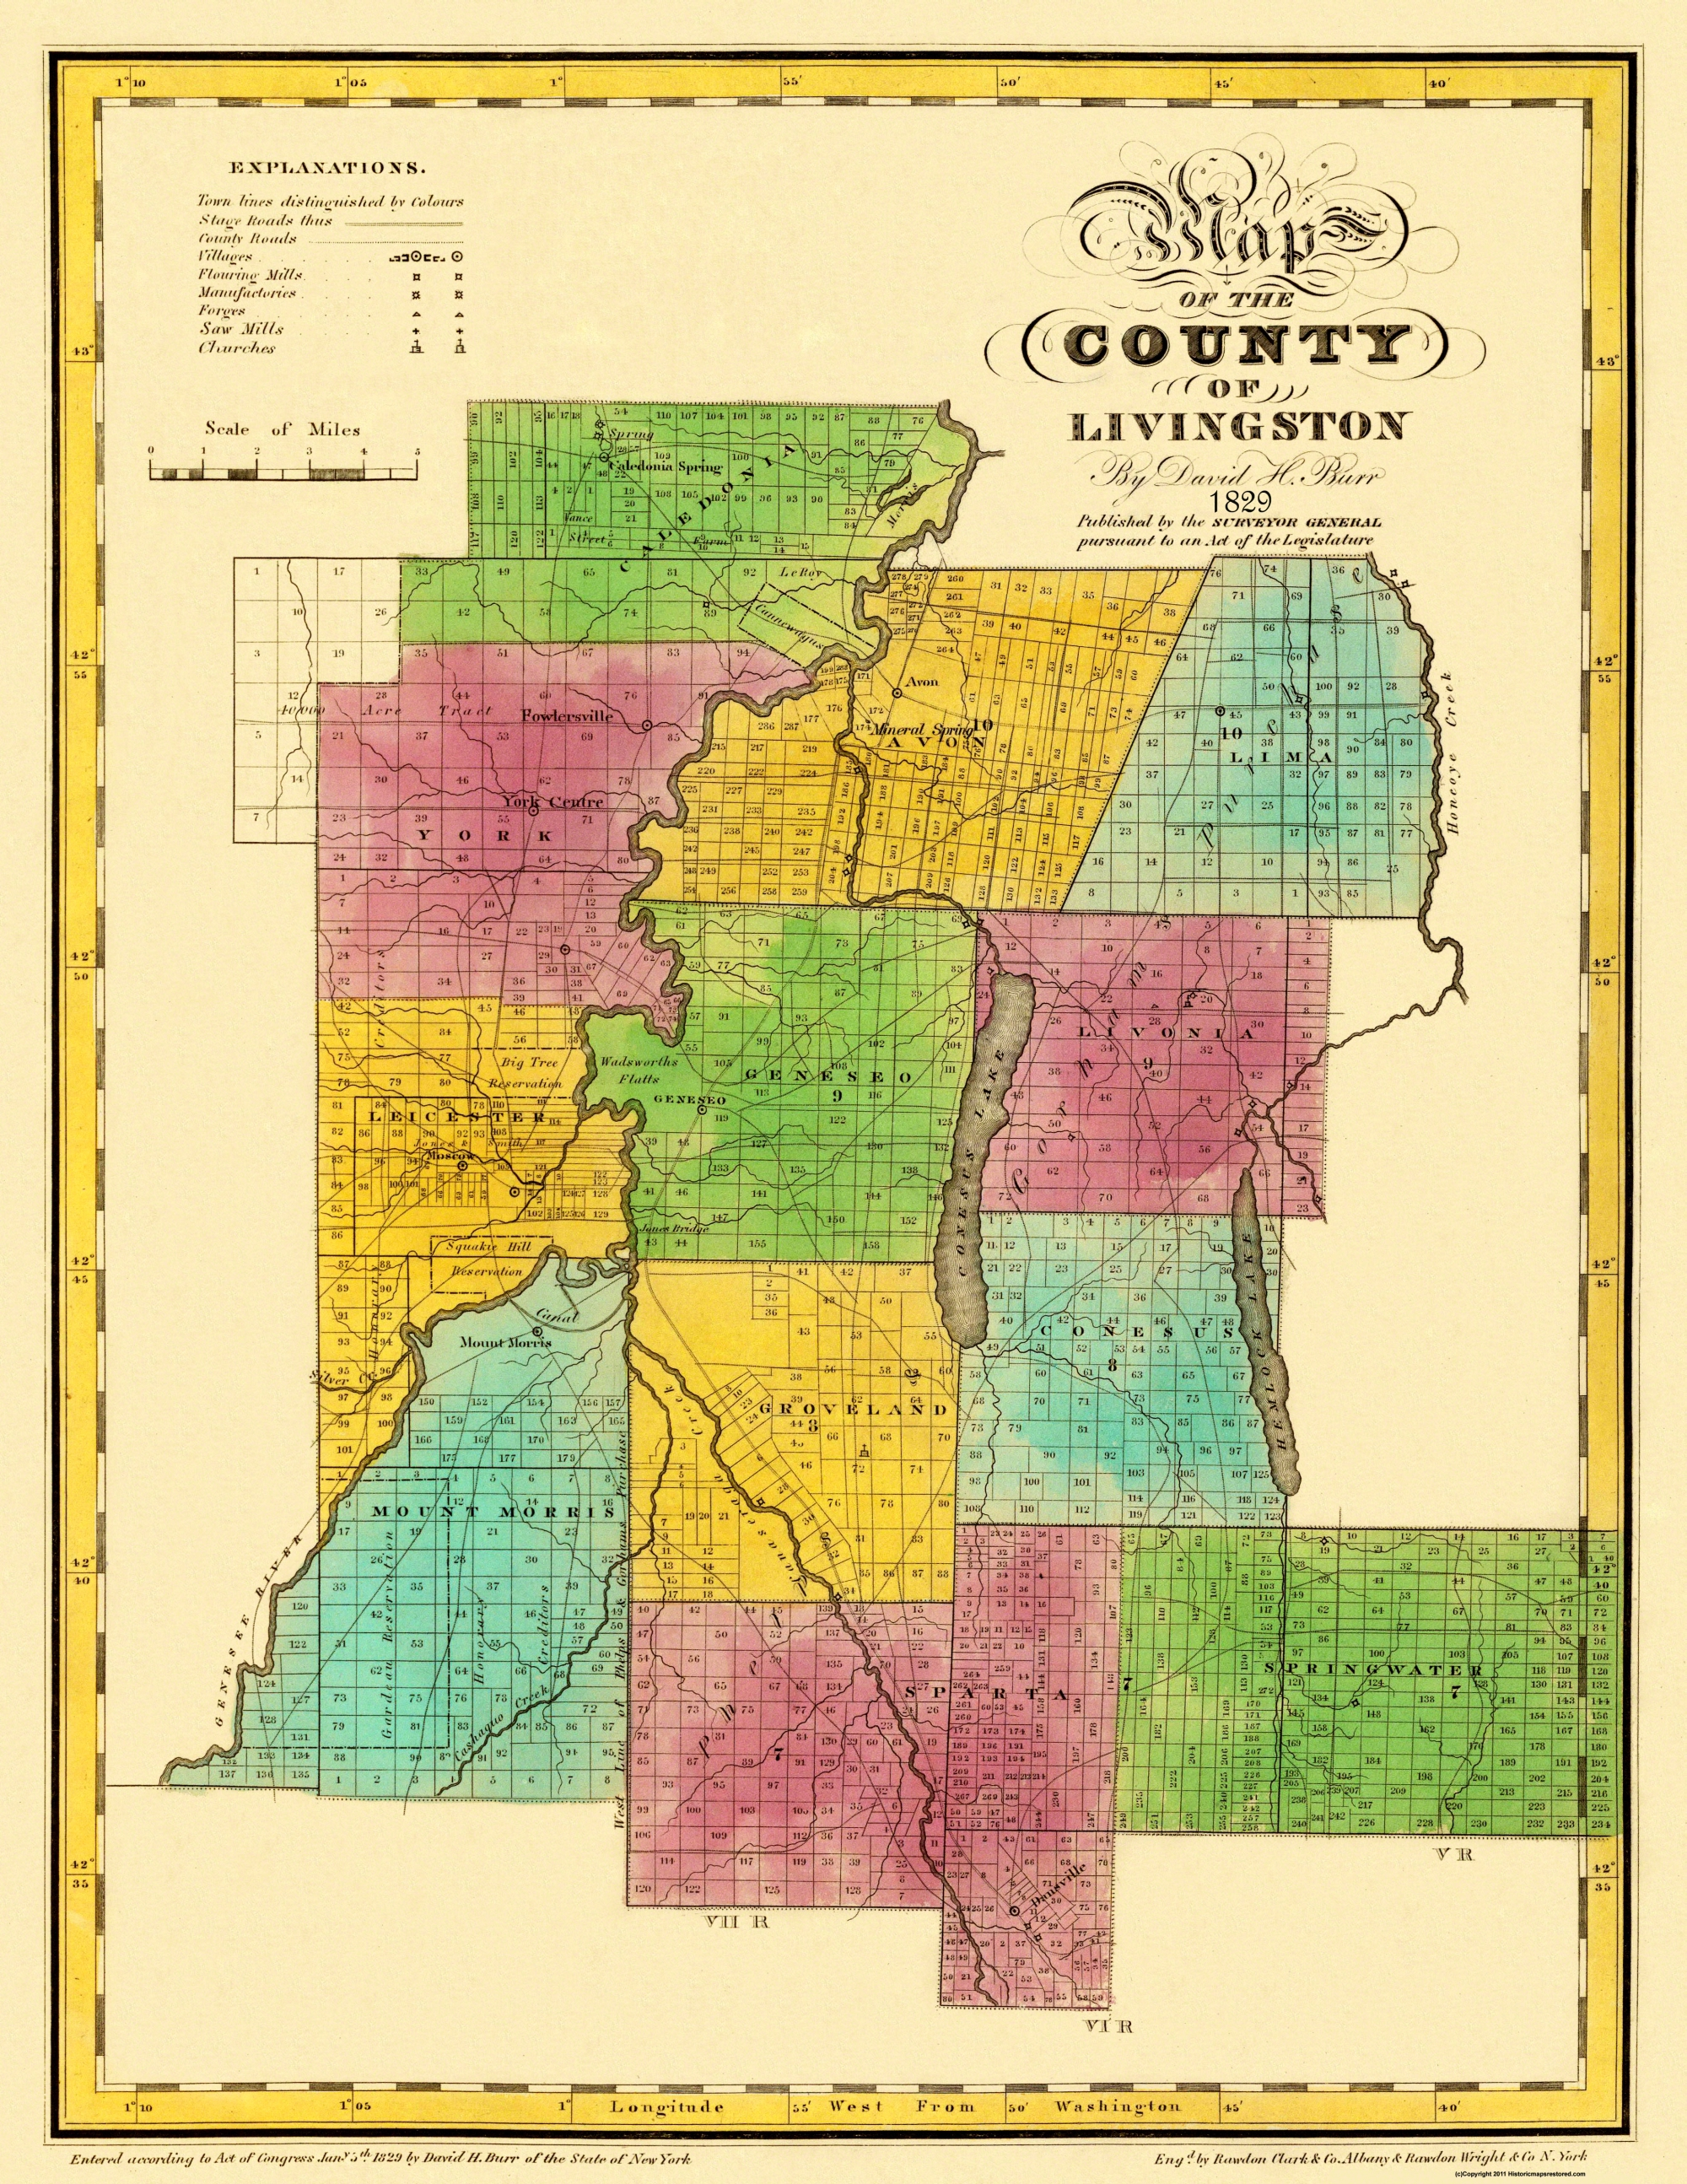 New york livingston county leicester - Honeoye Creek Conesus Lake Genesee River Churches And Schools Located Some Named Landowners Caledonia Spring New York United States